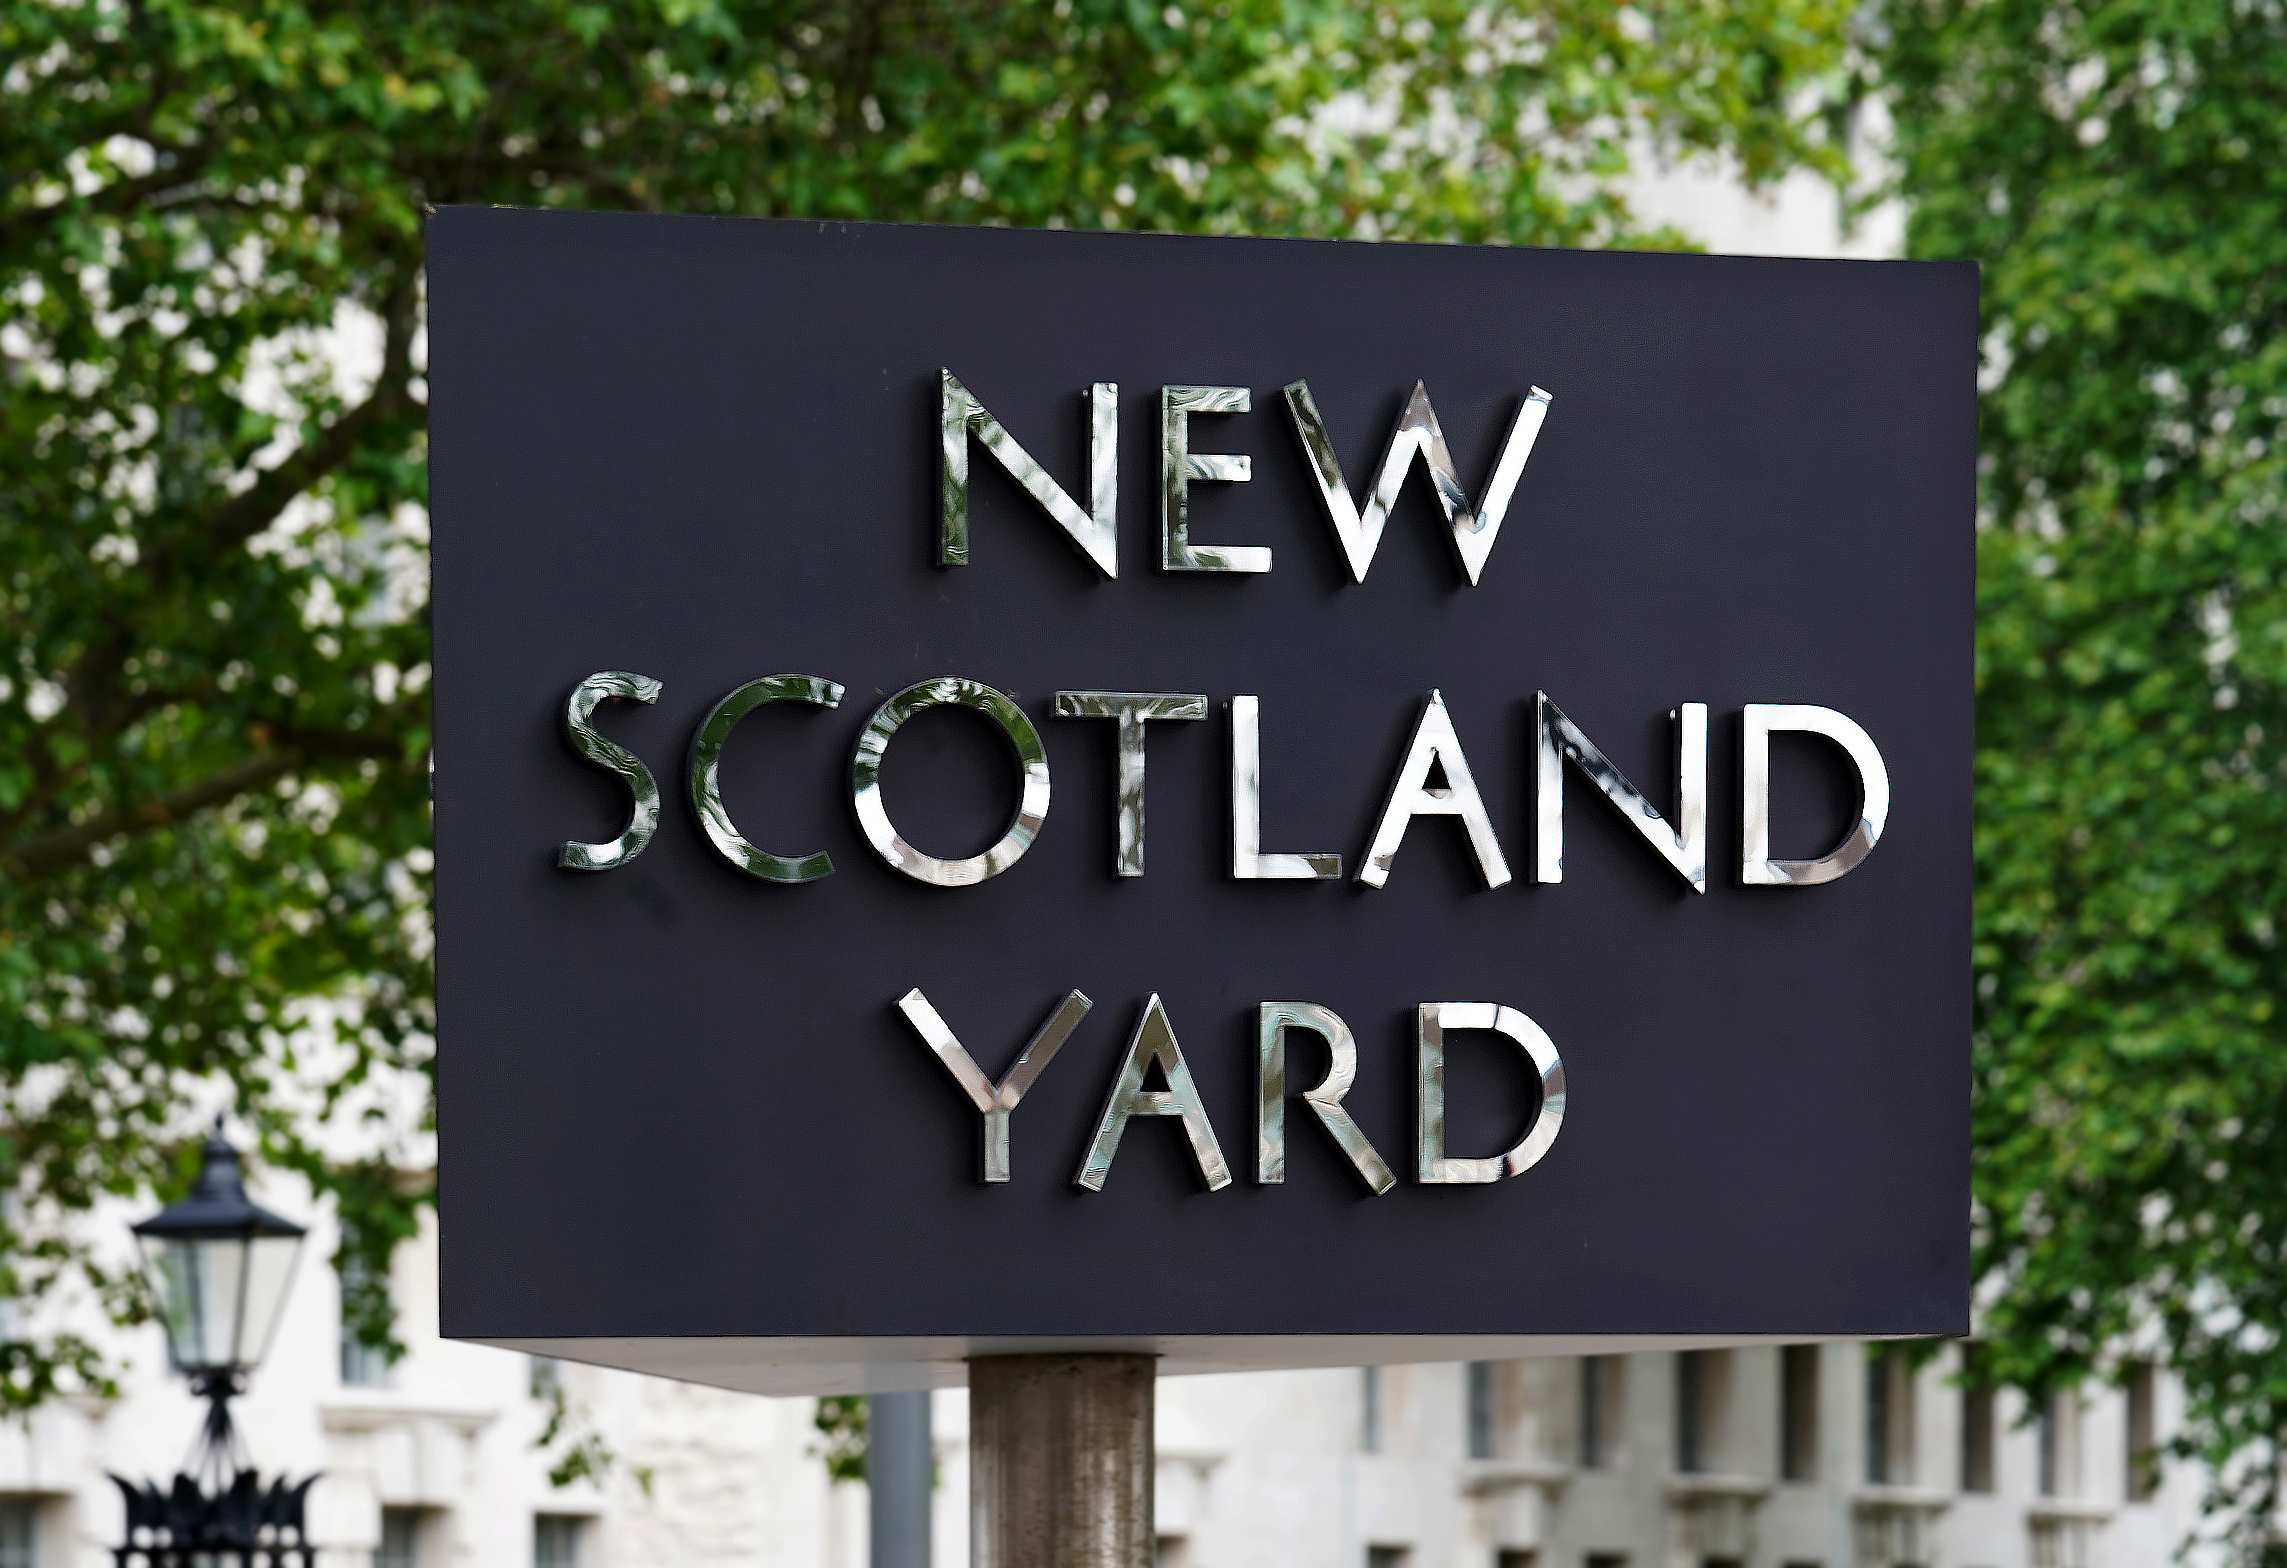 Four men arrested over alleged anti-Semitic abuse in north London are released on bail